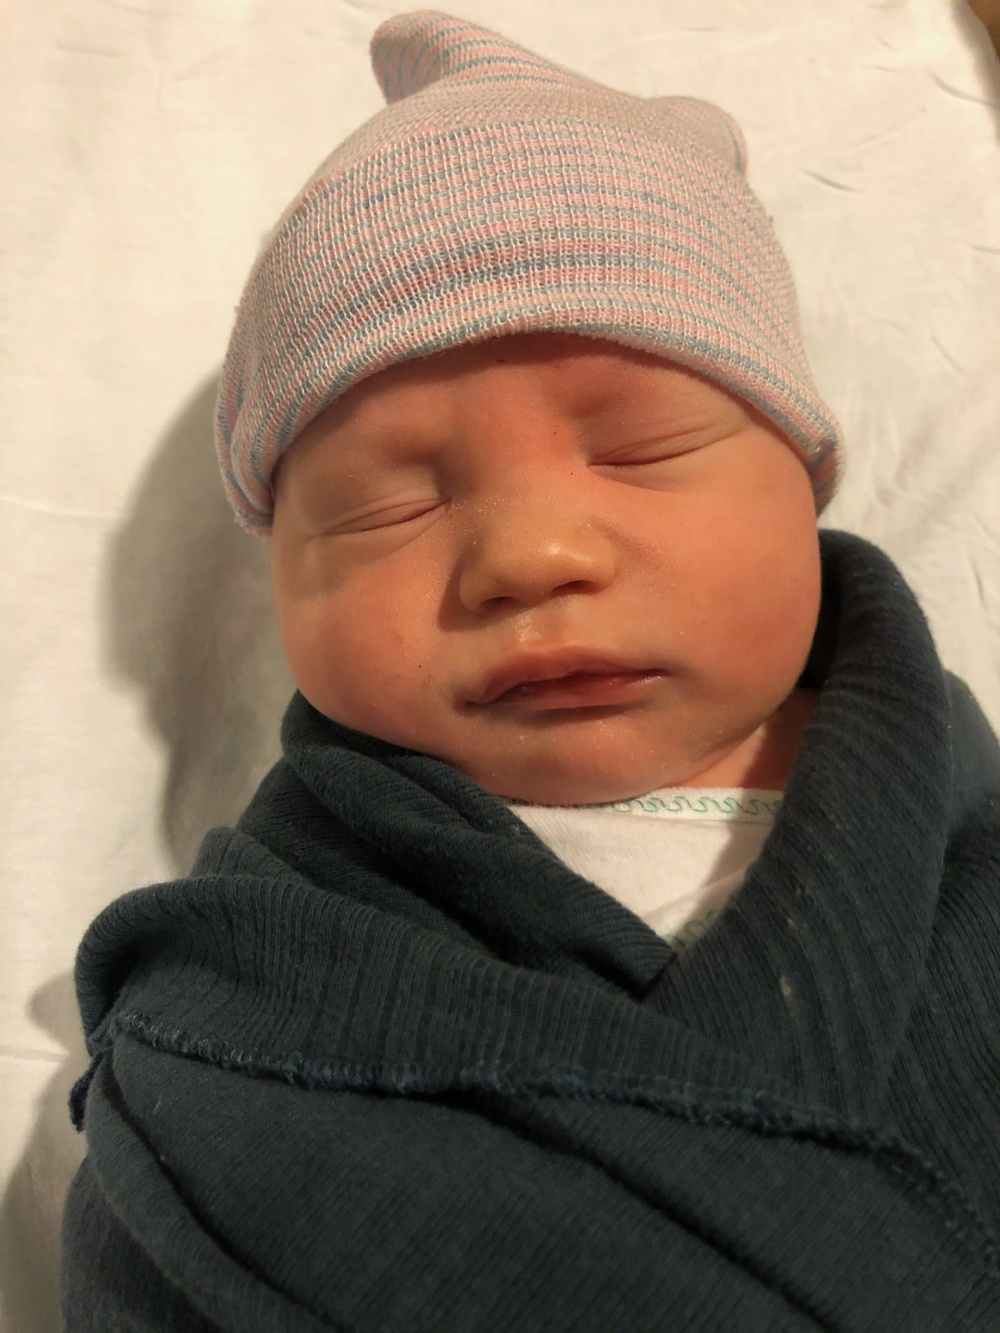 baby viggo with a hat on wrapped in a swaddle